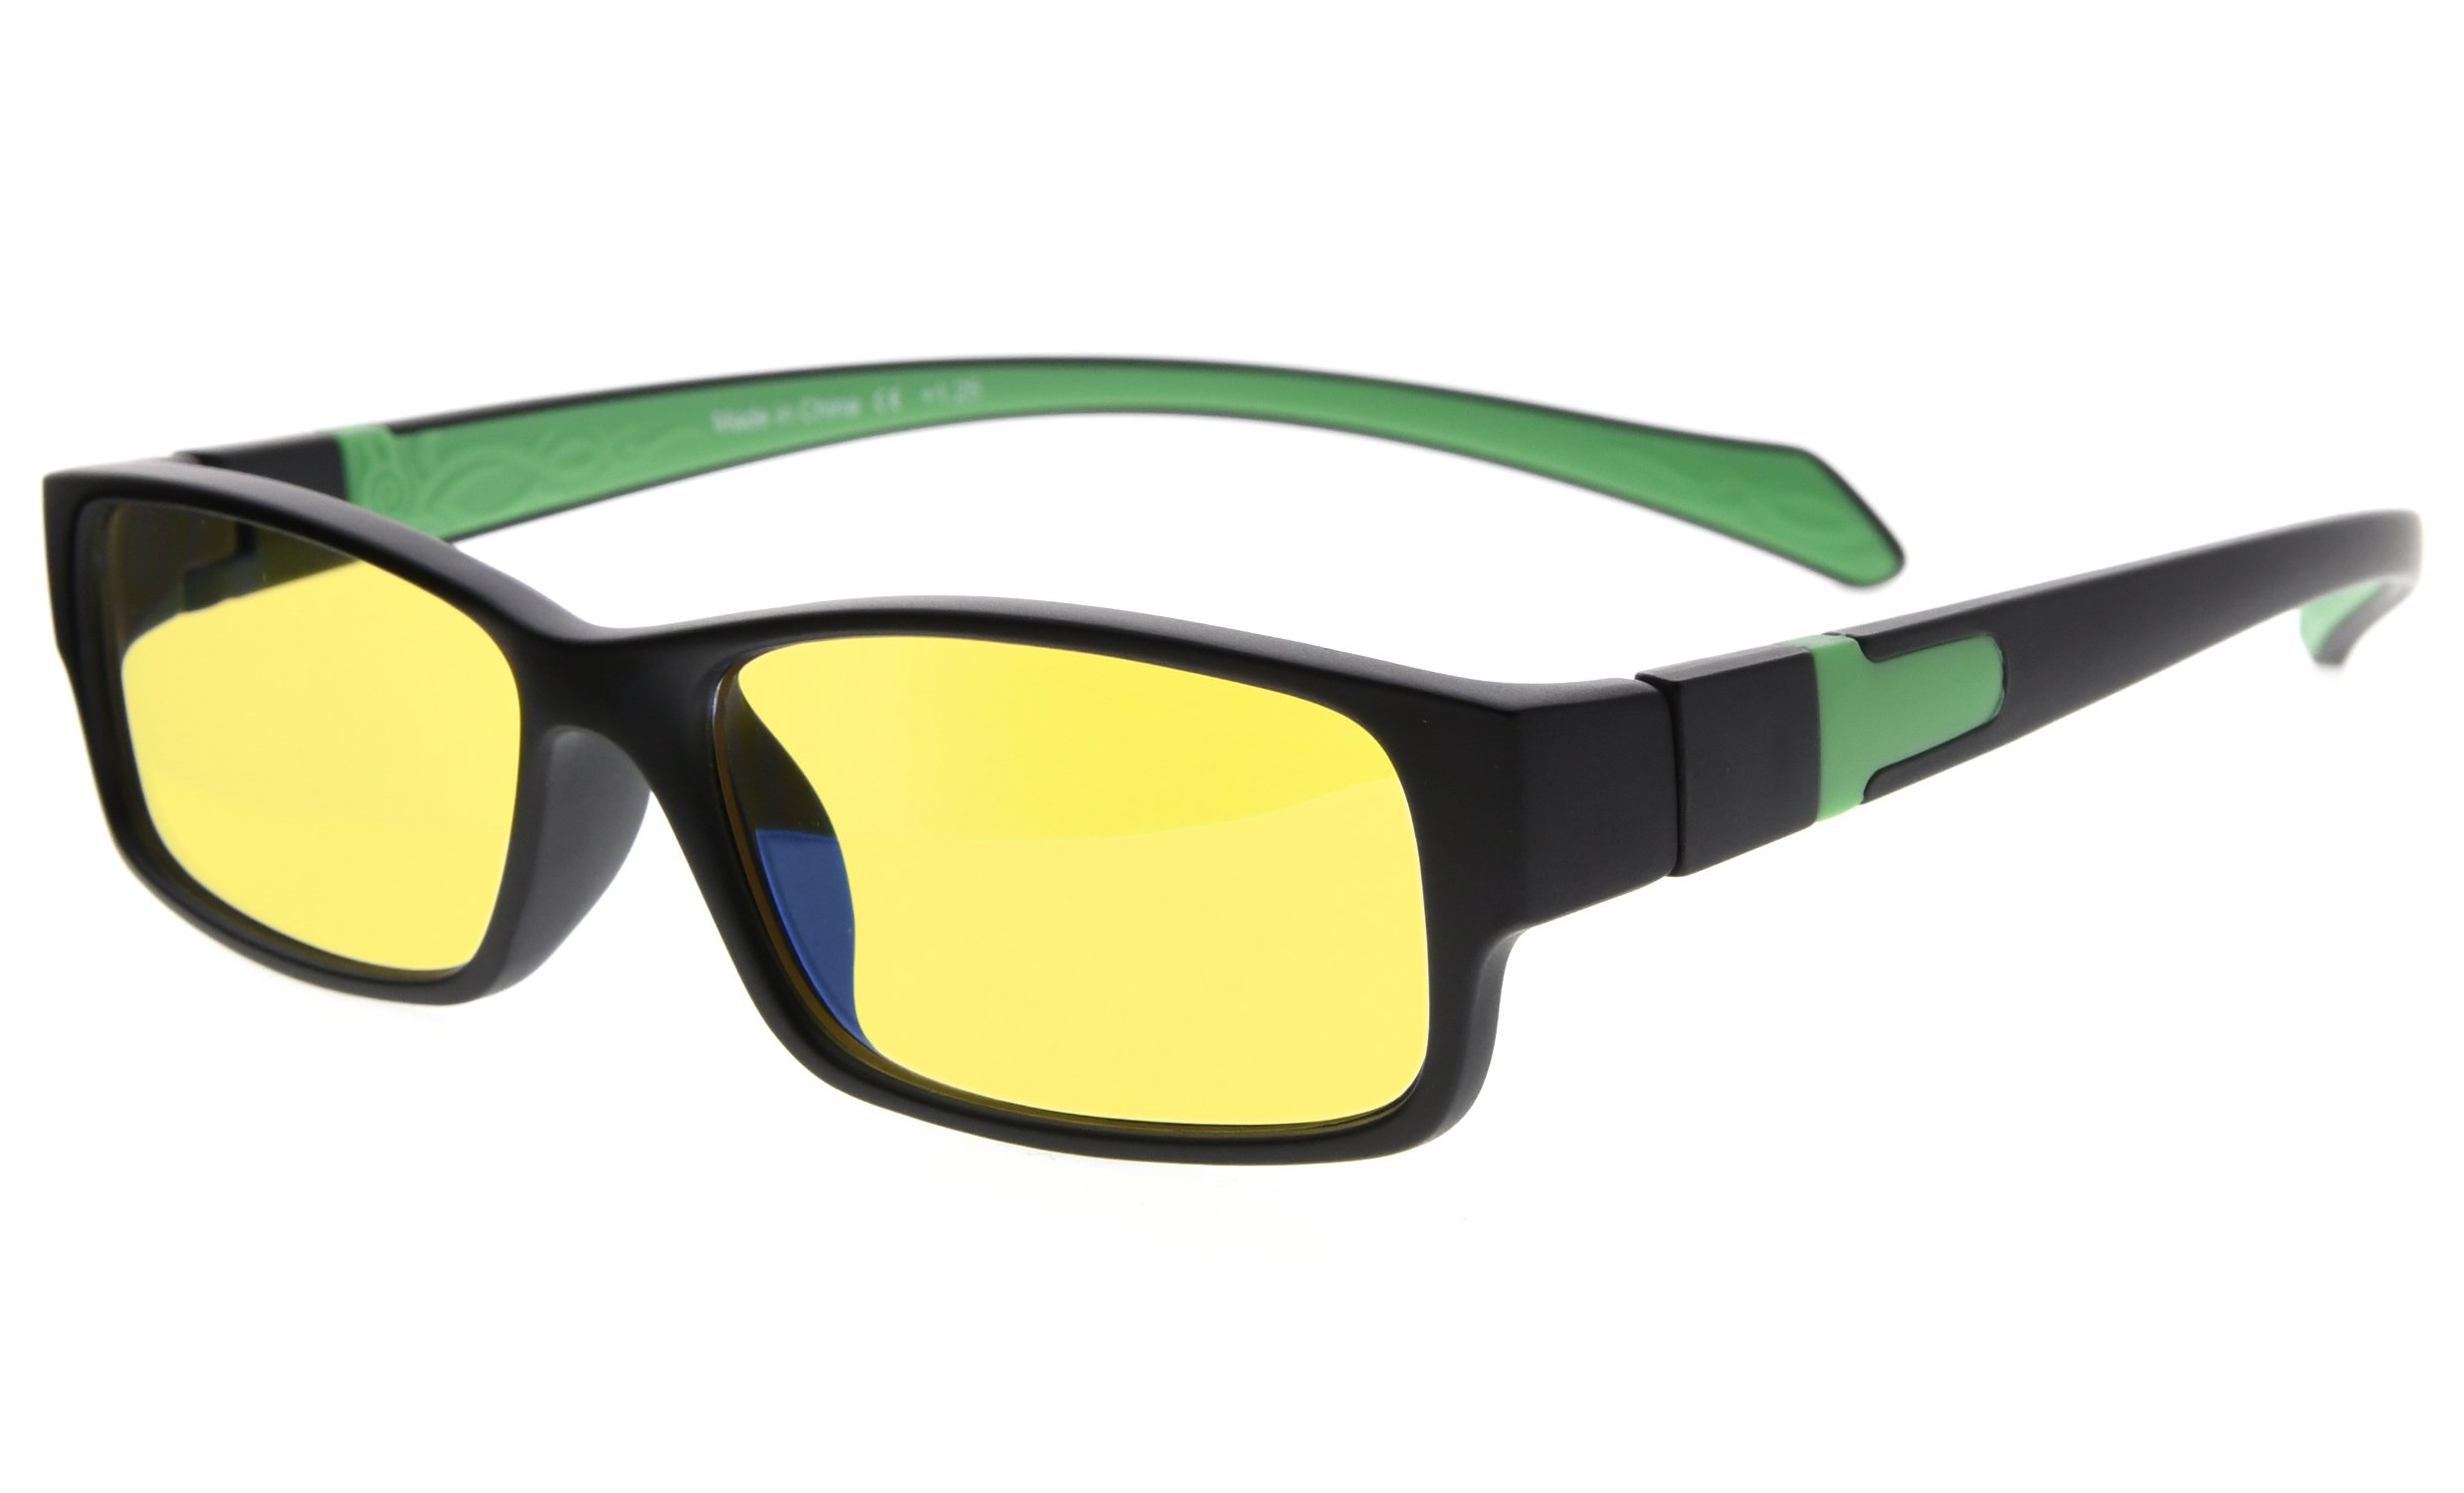 Eyekepper UV and Computer/TV Electromagnetic Radiation Protection,Scratch Resistant, Anti Blue Light More Than 94% Computer Glasses, Yellow Tinted Lens (Black/Green Arm +2.00)